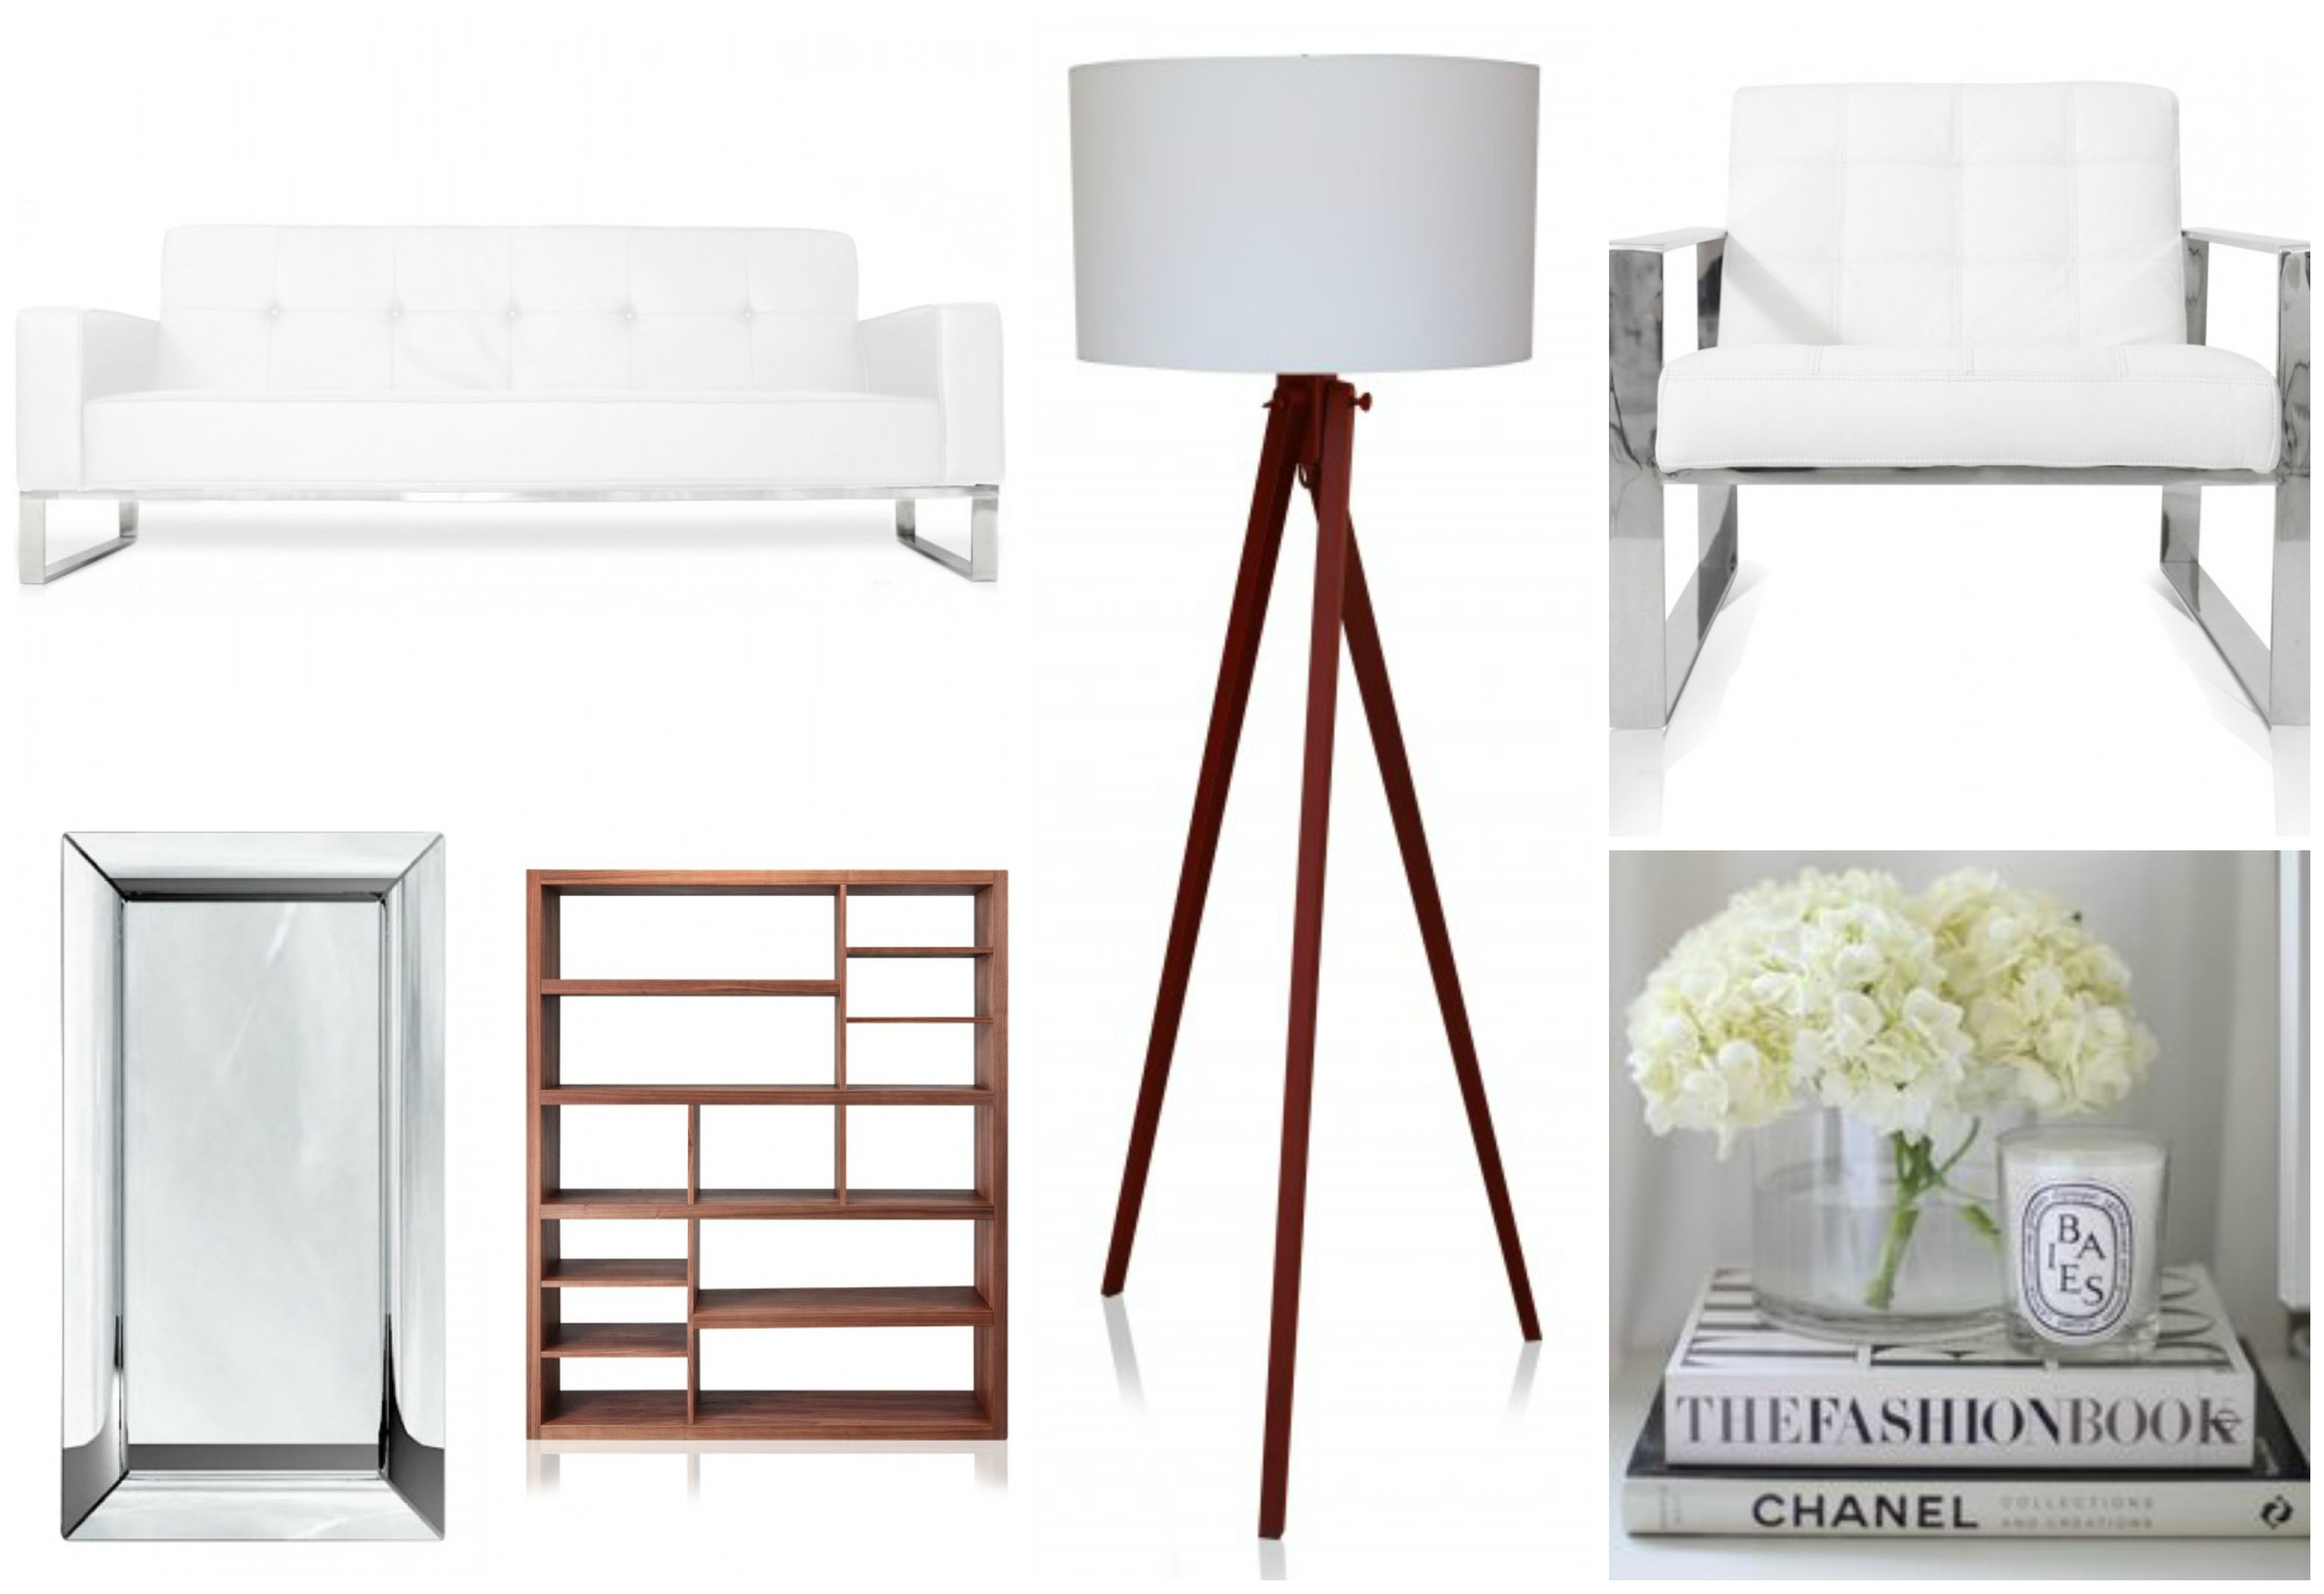 Wondrous Living Room Inspiration With Modani Modern Furniture Life Onthecornerstone Fun Painted Chair Ideas Images Onthecornerstoneorg